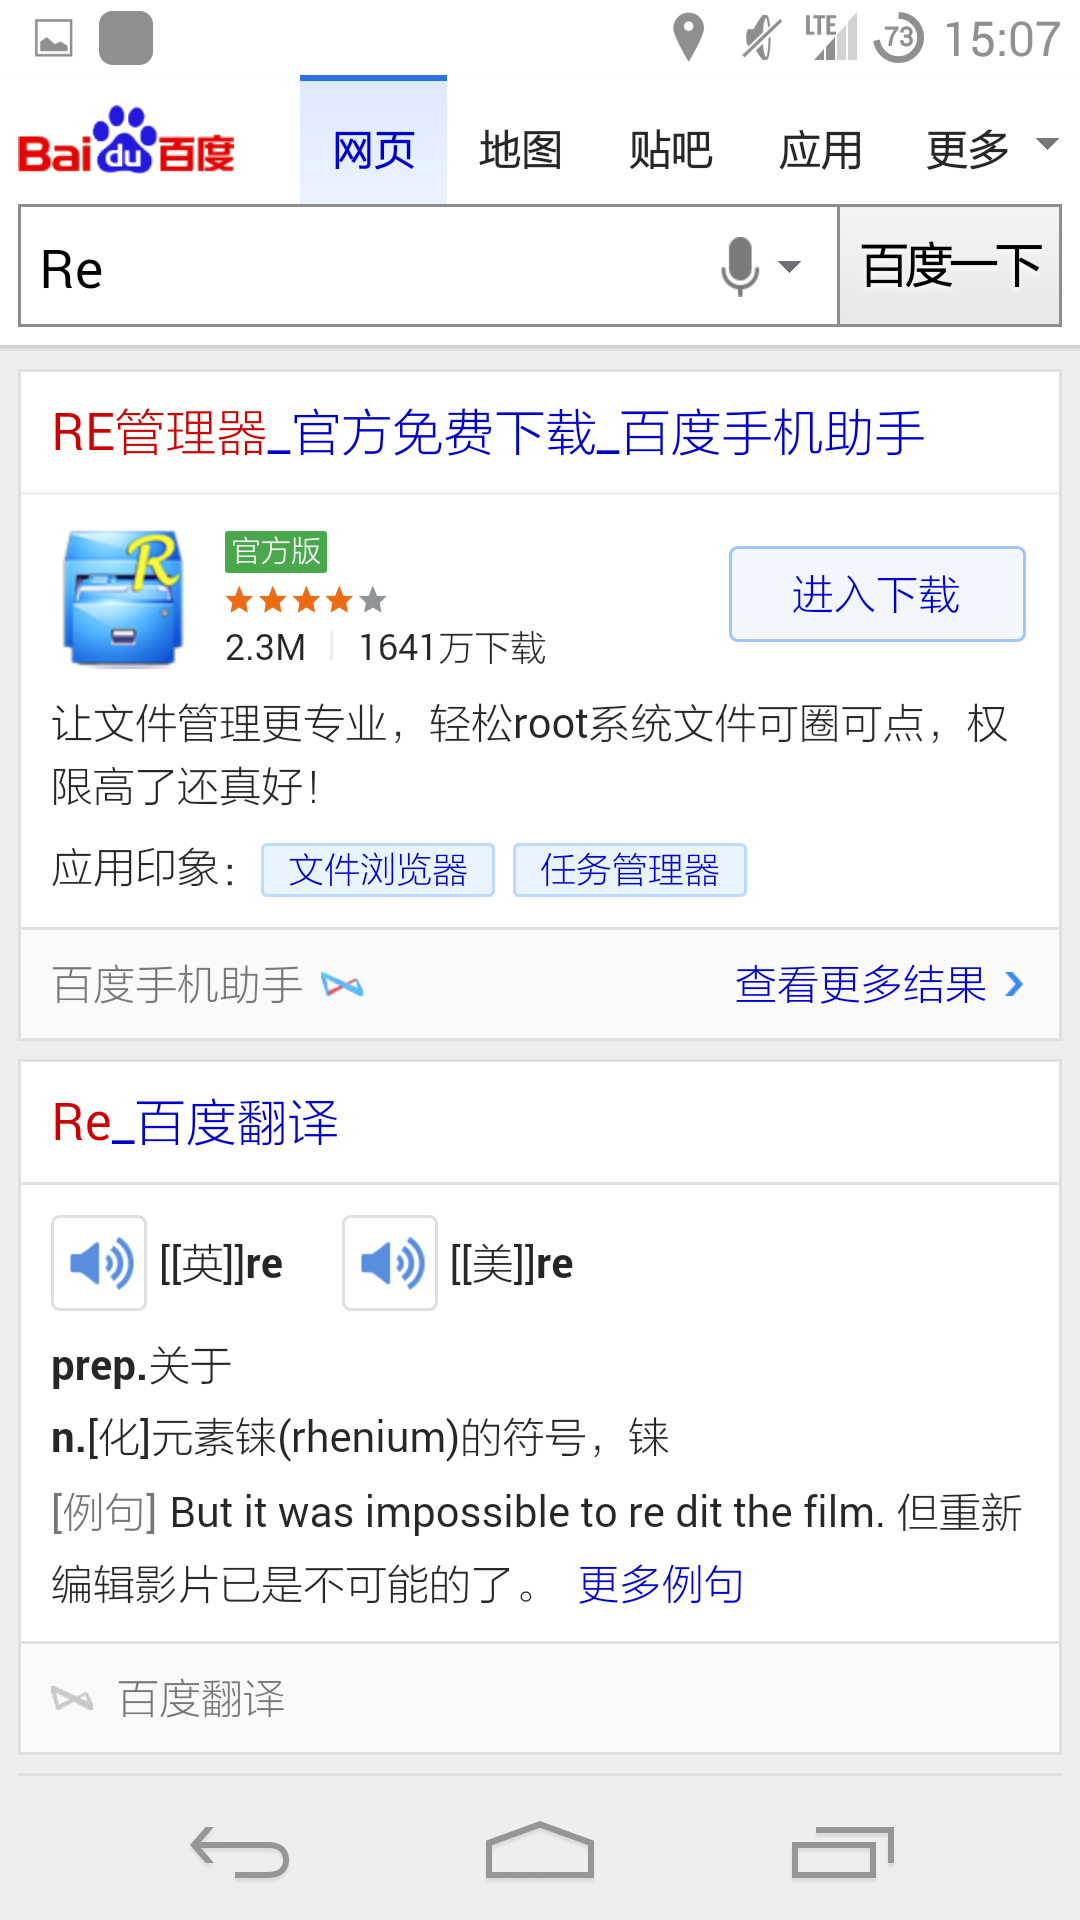 Screenshot_2013-09-17-15-07-27.png